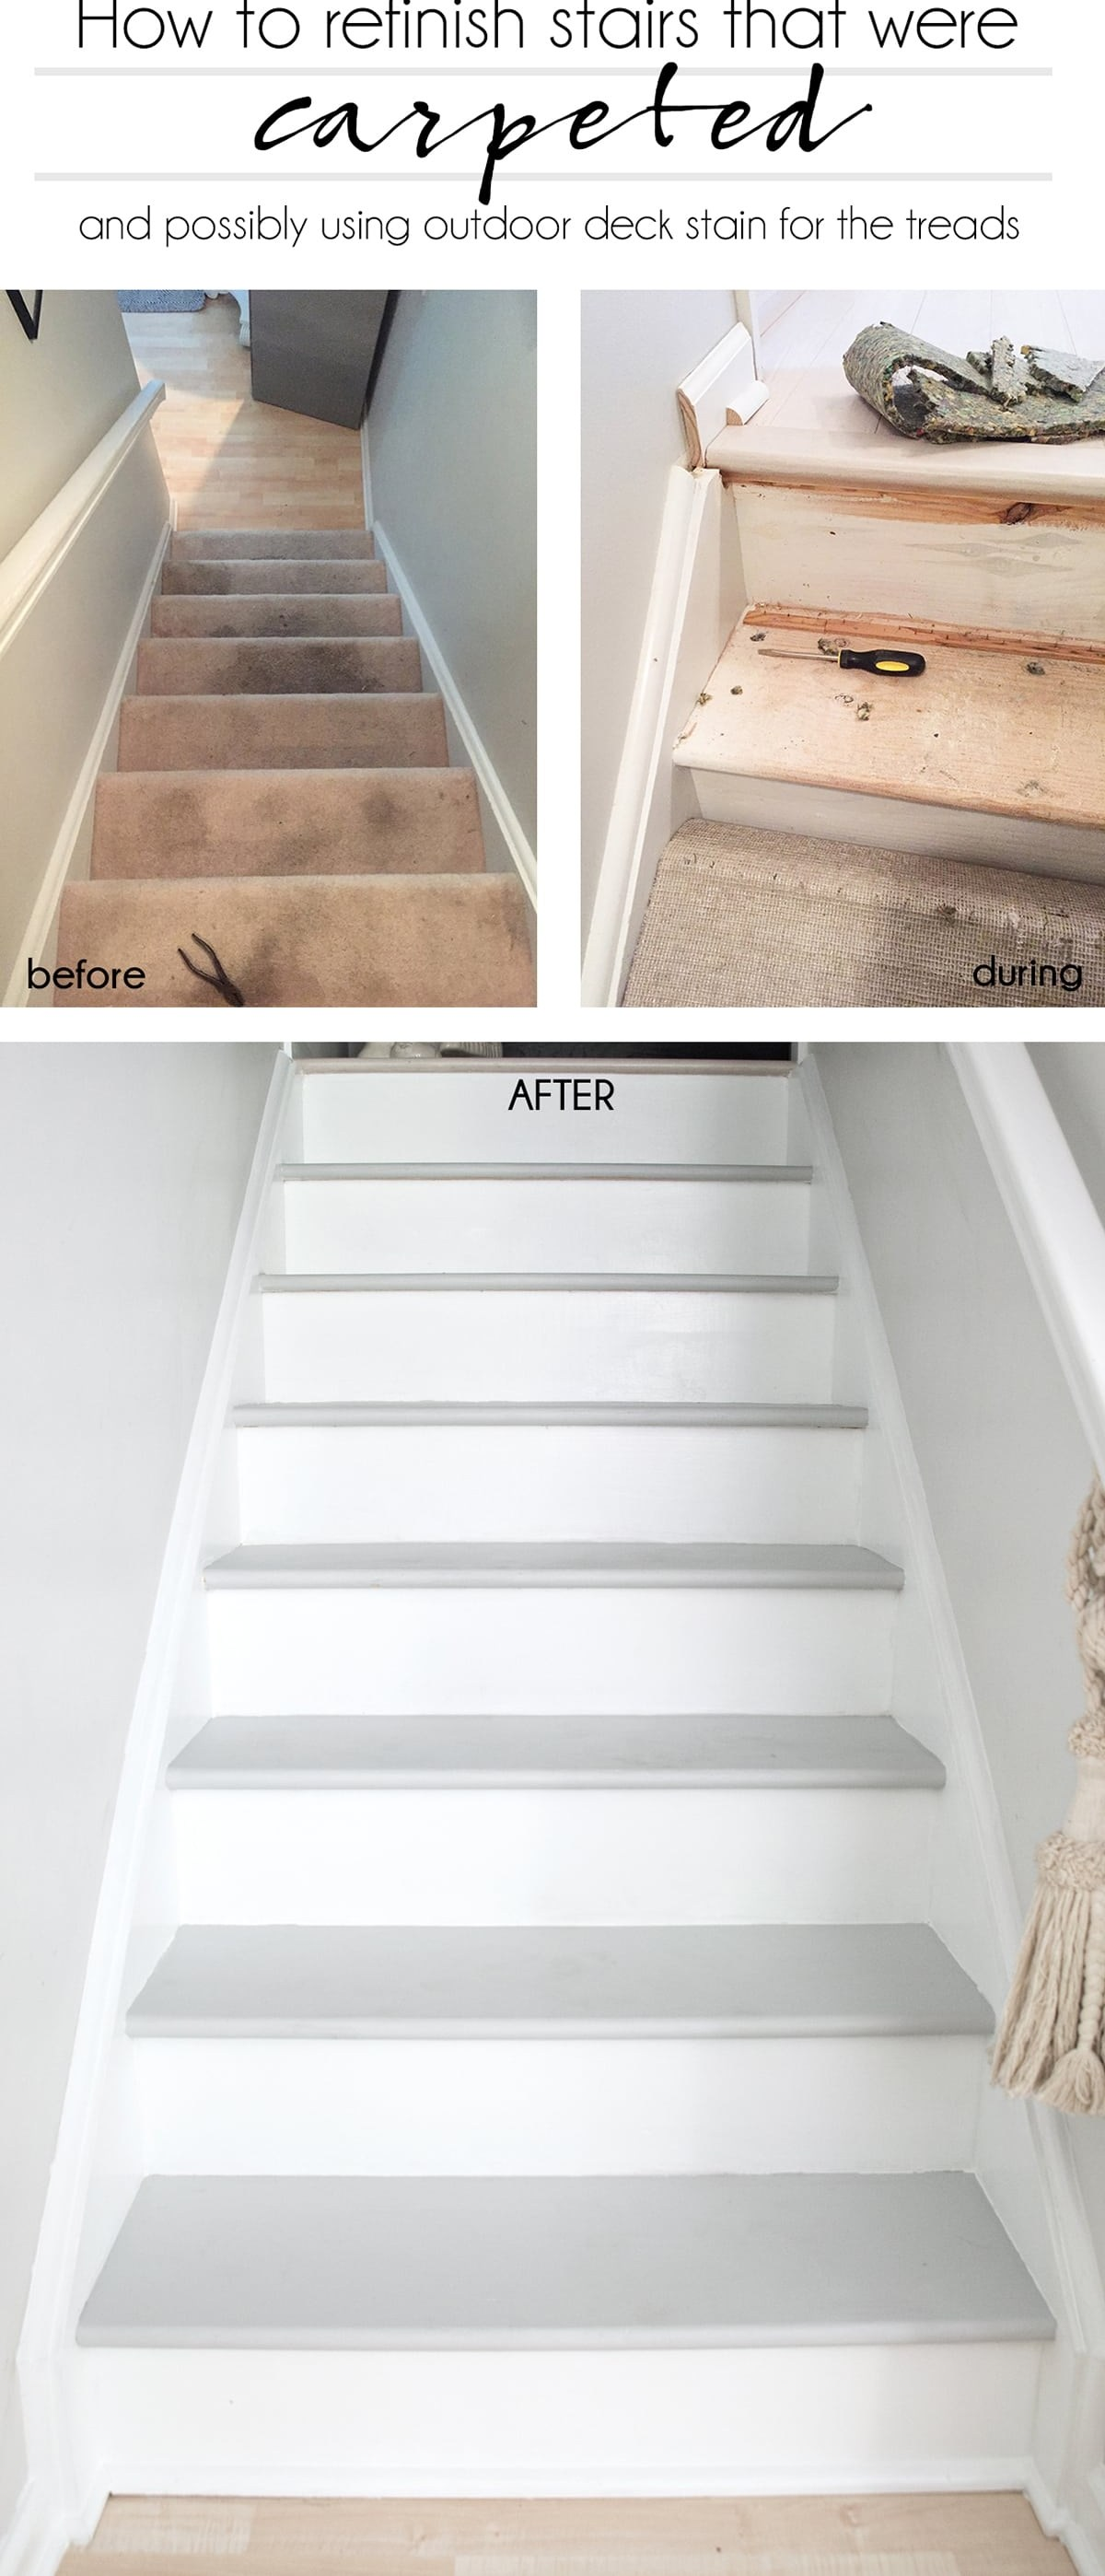 How To Refinish Stairs That Were Carpeted Cuckoo4Design   Painted Stairs With Carpet Treads   Oak   Wallpaper   Non Slip   Retrotread   Hardwood